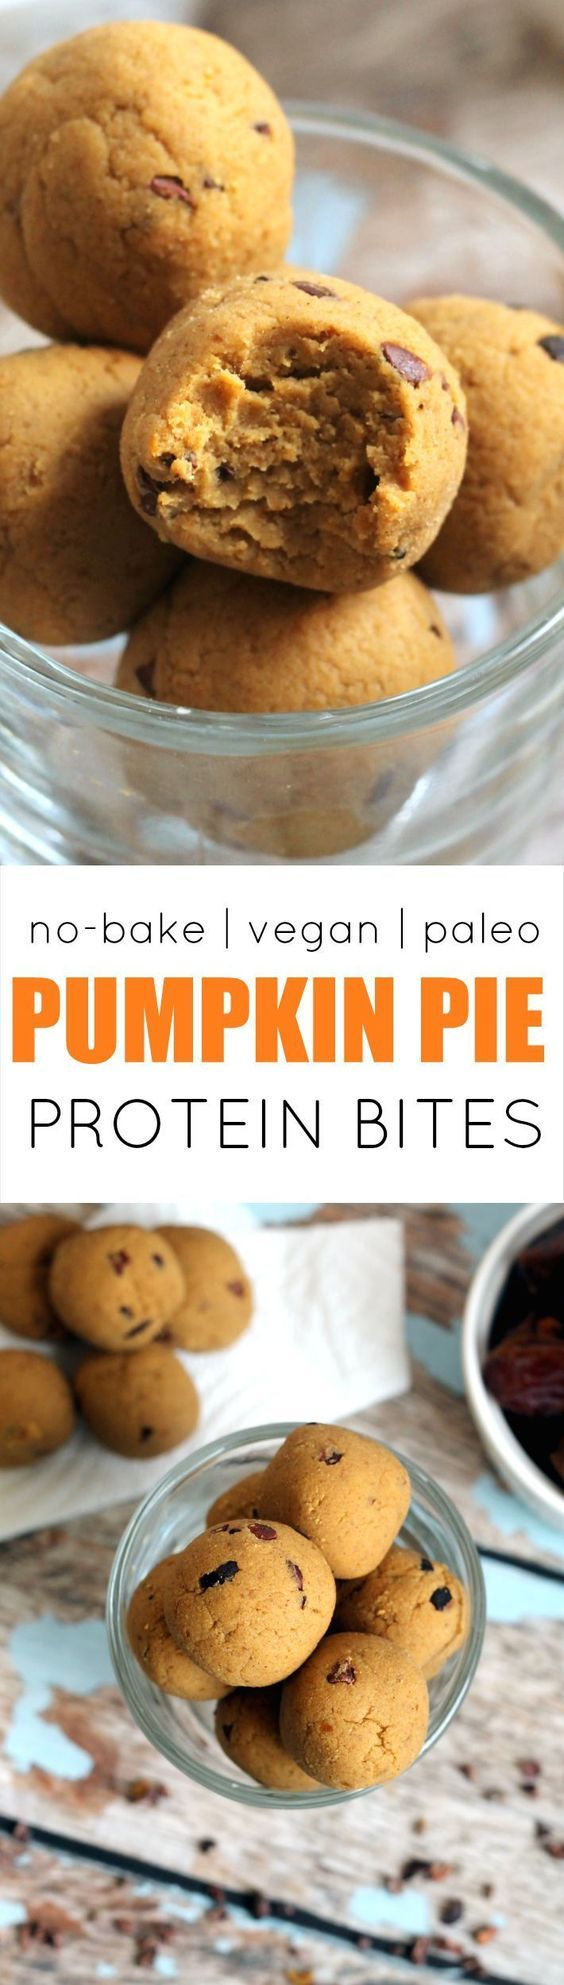 These easy cakey Pumpkin Pie Protein No-Bake Bites have the flavor of pumpkin pie but are secretly packed with protein and fiber! Vegan gluten-free paleo and kid-friendly.